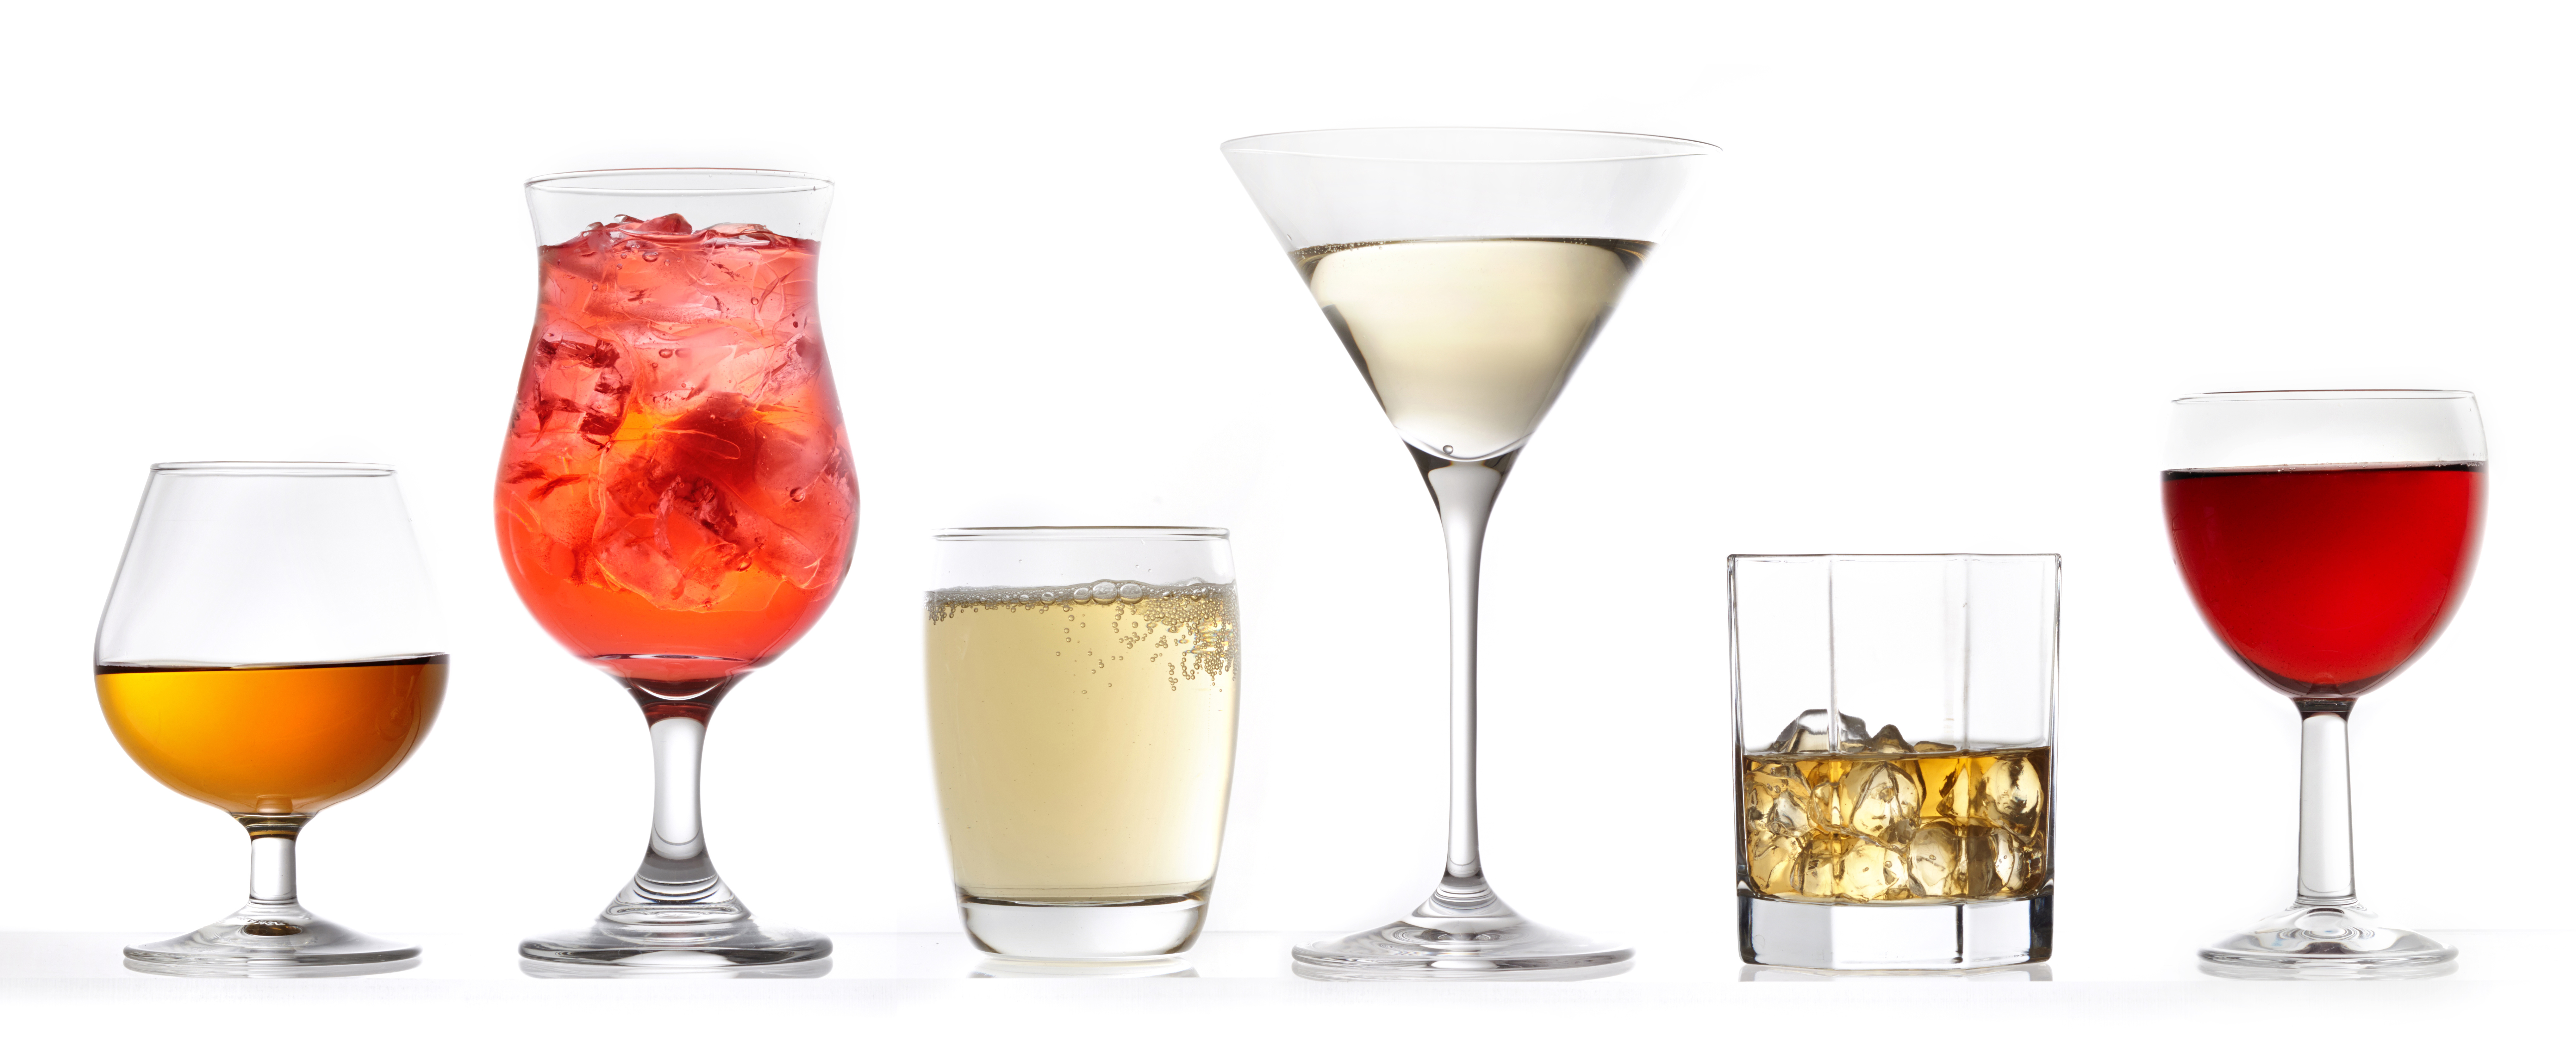 three glasses of various drinks on a white background